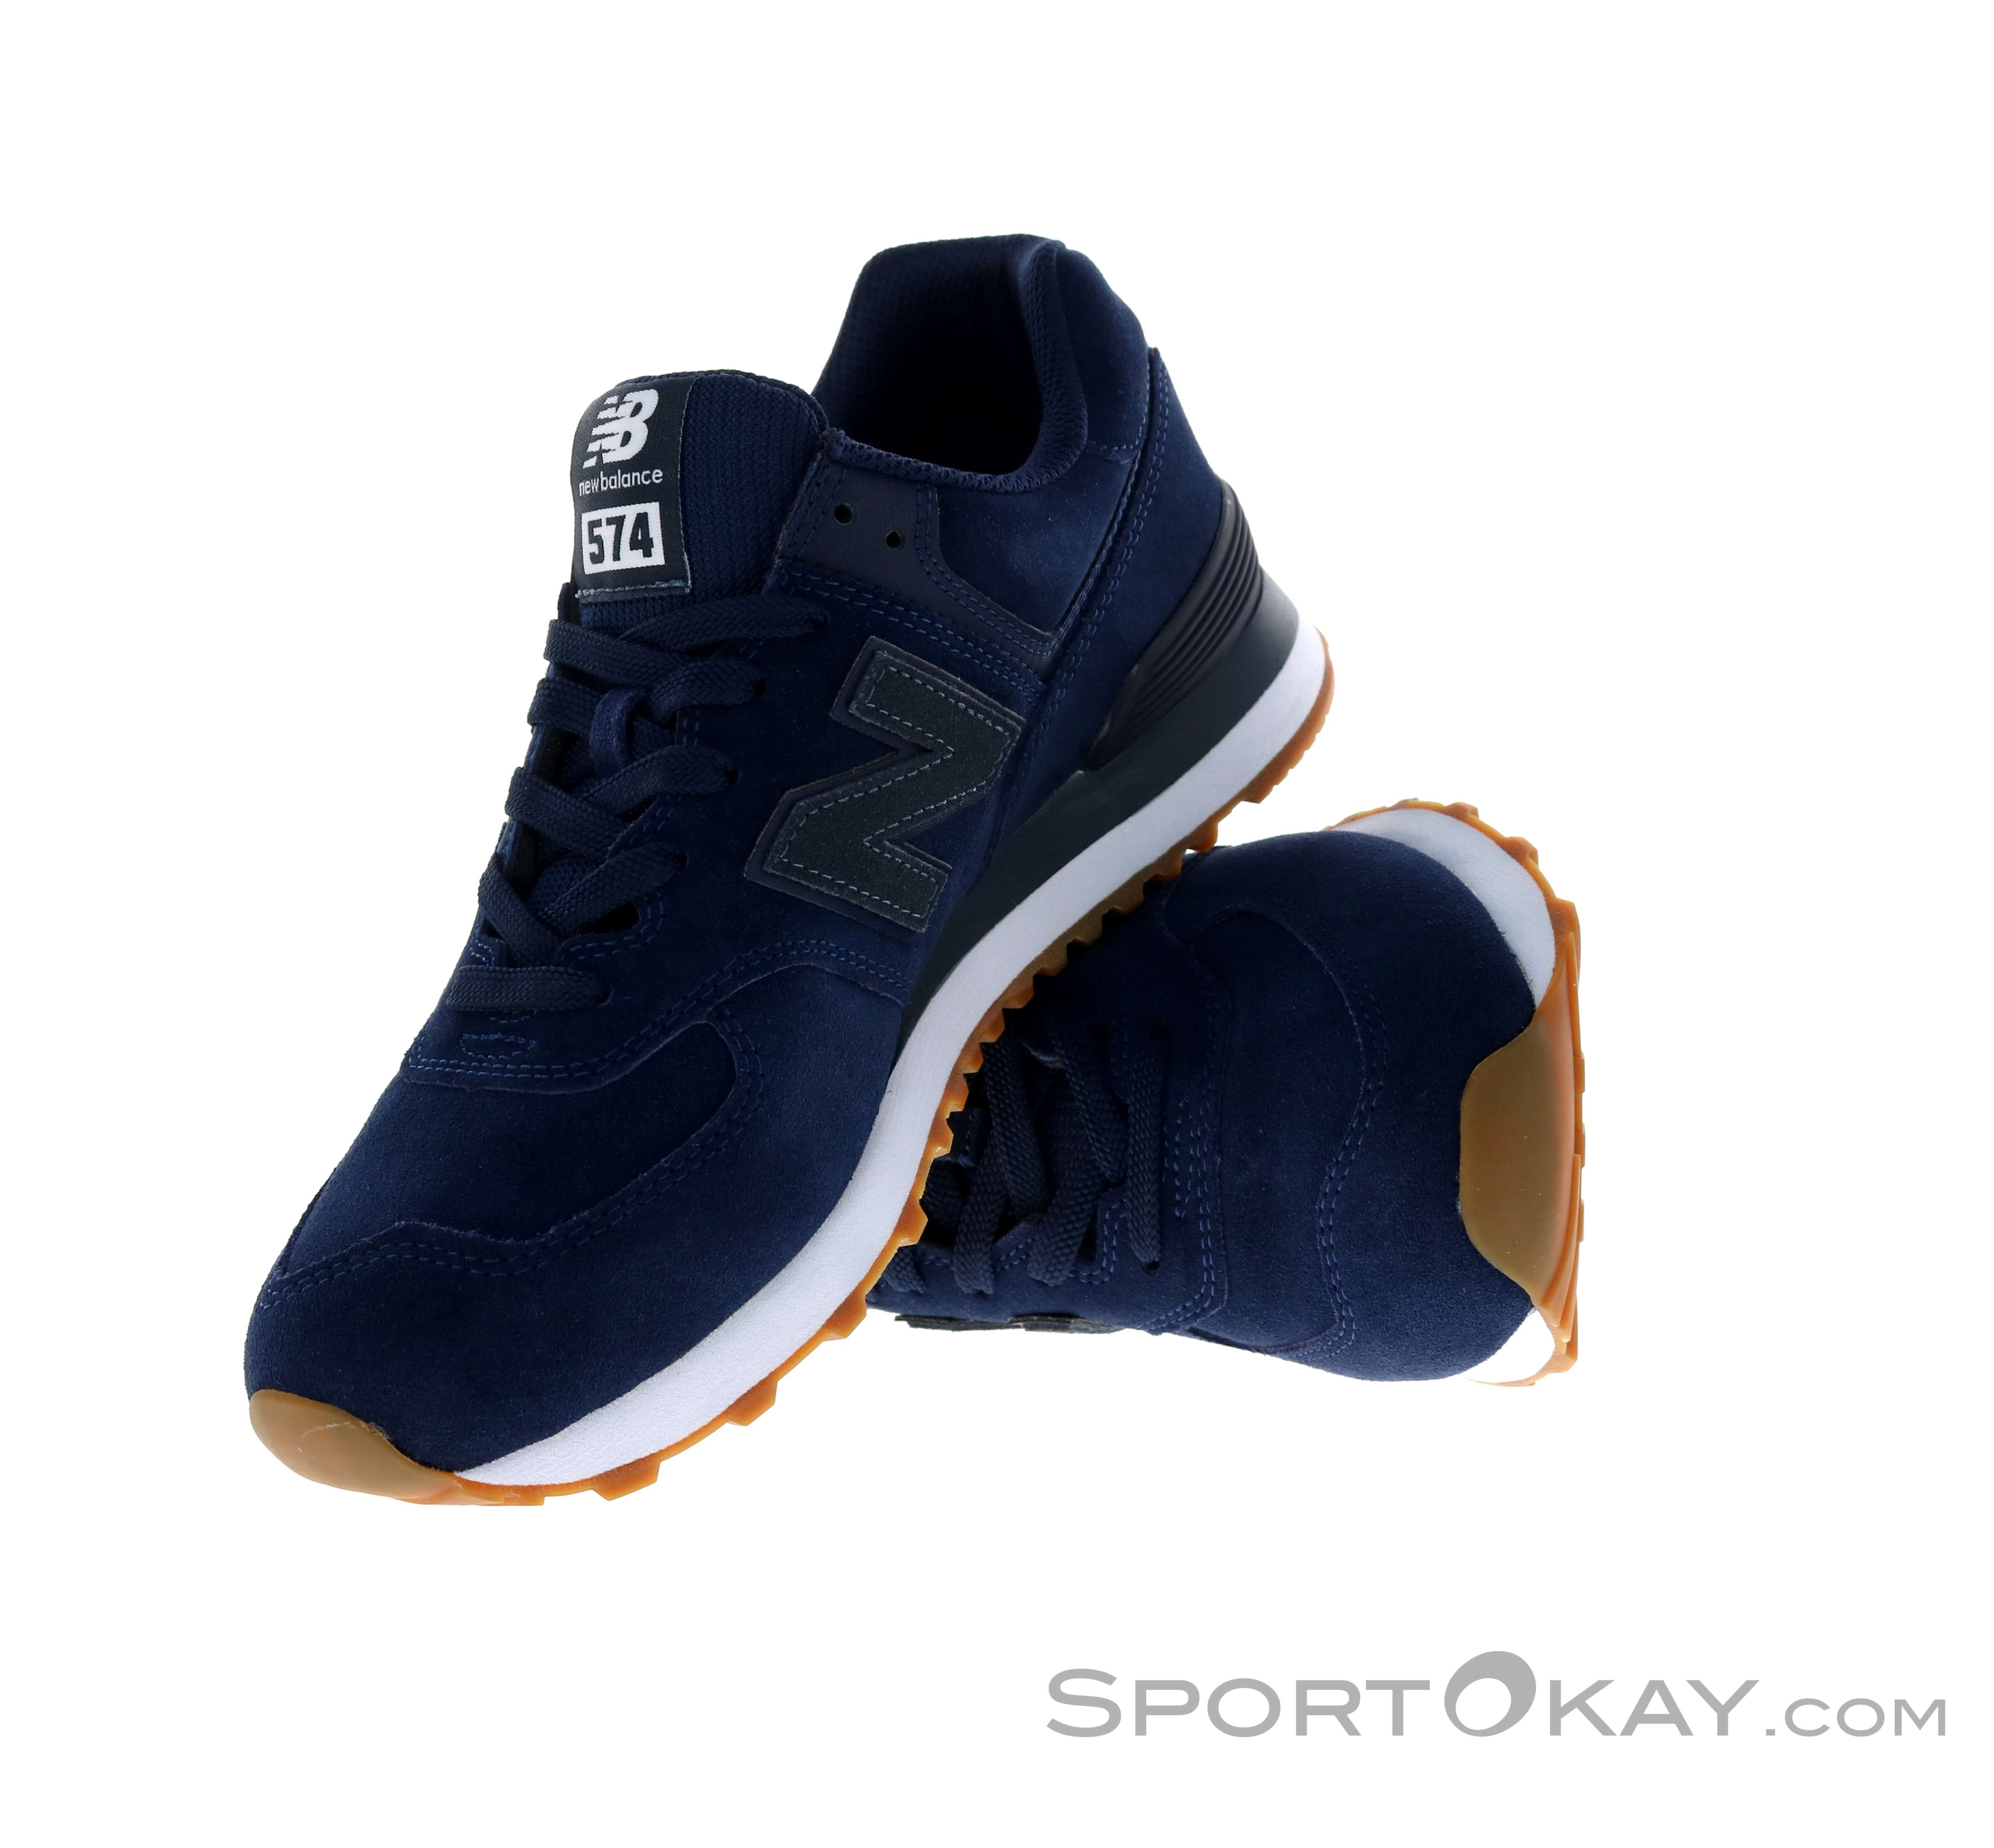 New Balance 574 Mens Leisure Shoes - Leisure Shoes - Shoes ...